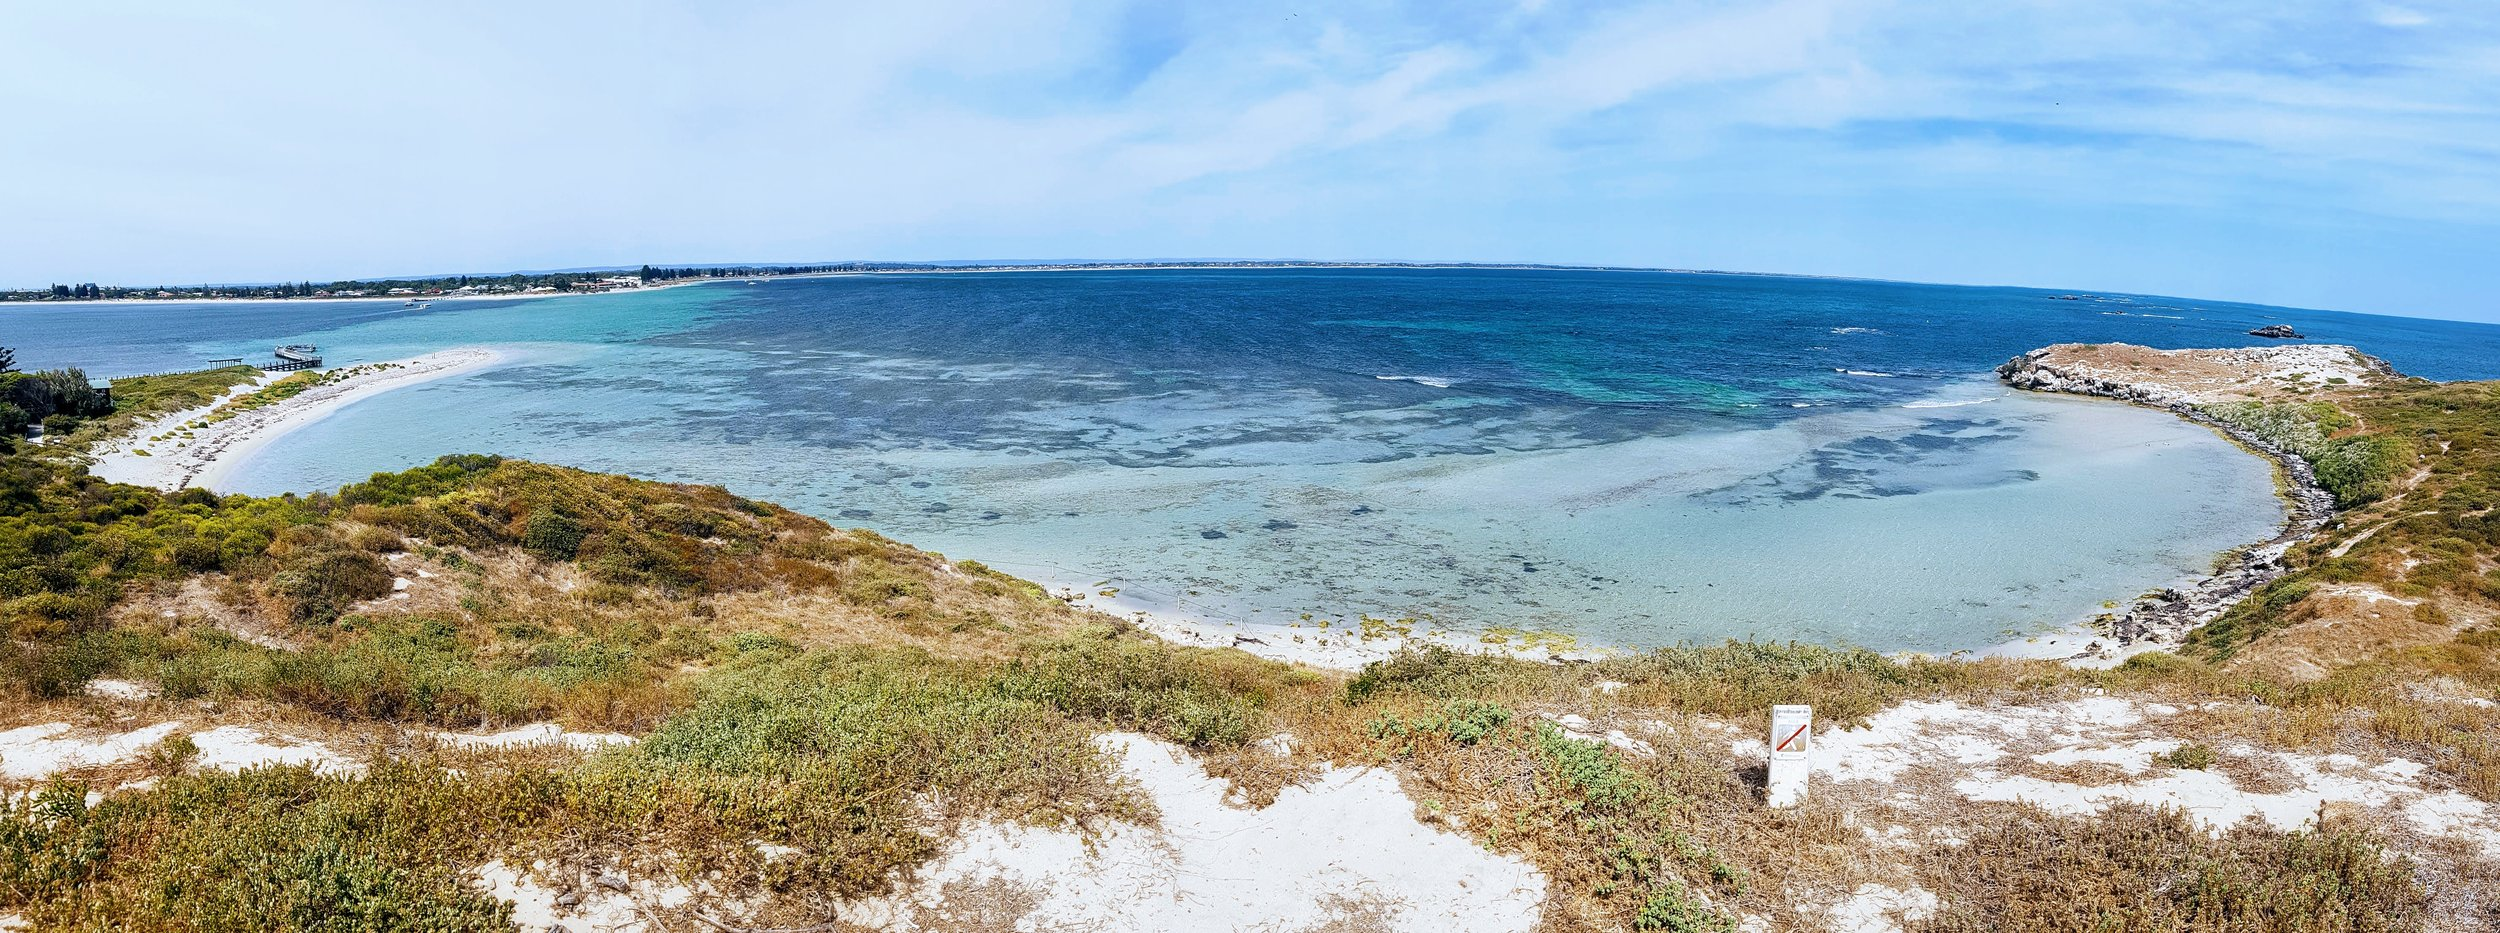 Penguin Island Panorama, looking back towards Rockingham and mainland